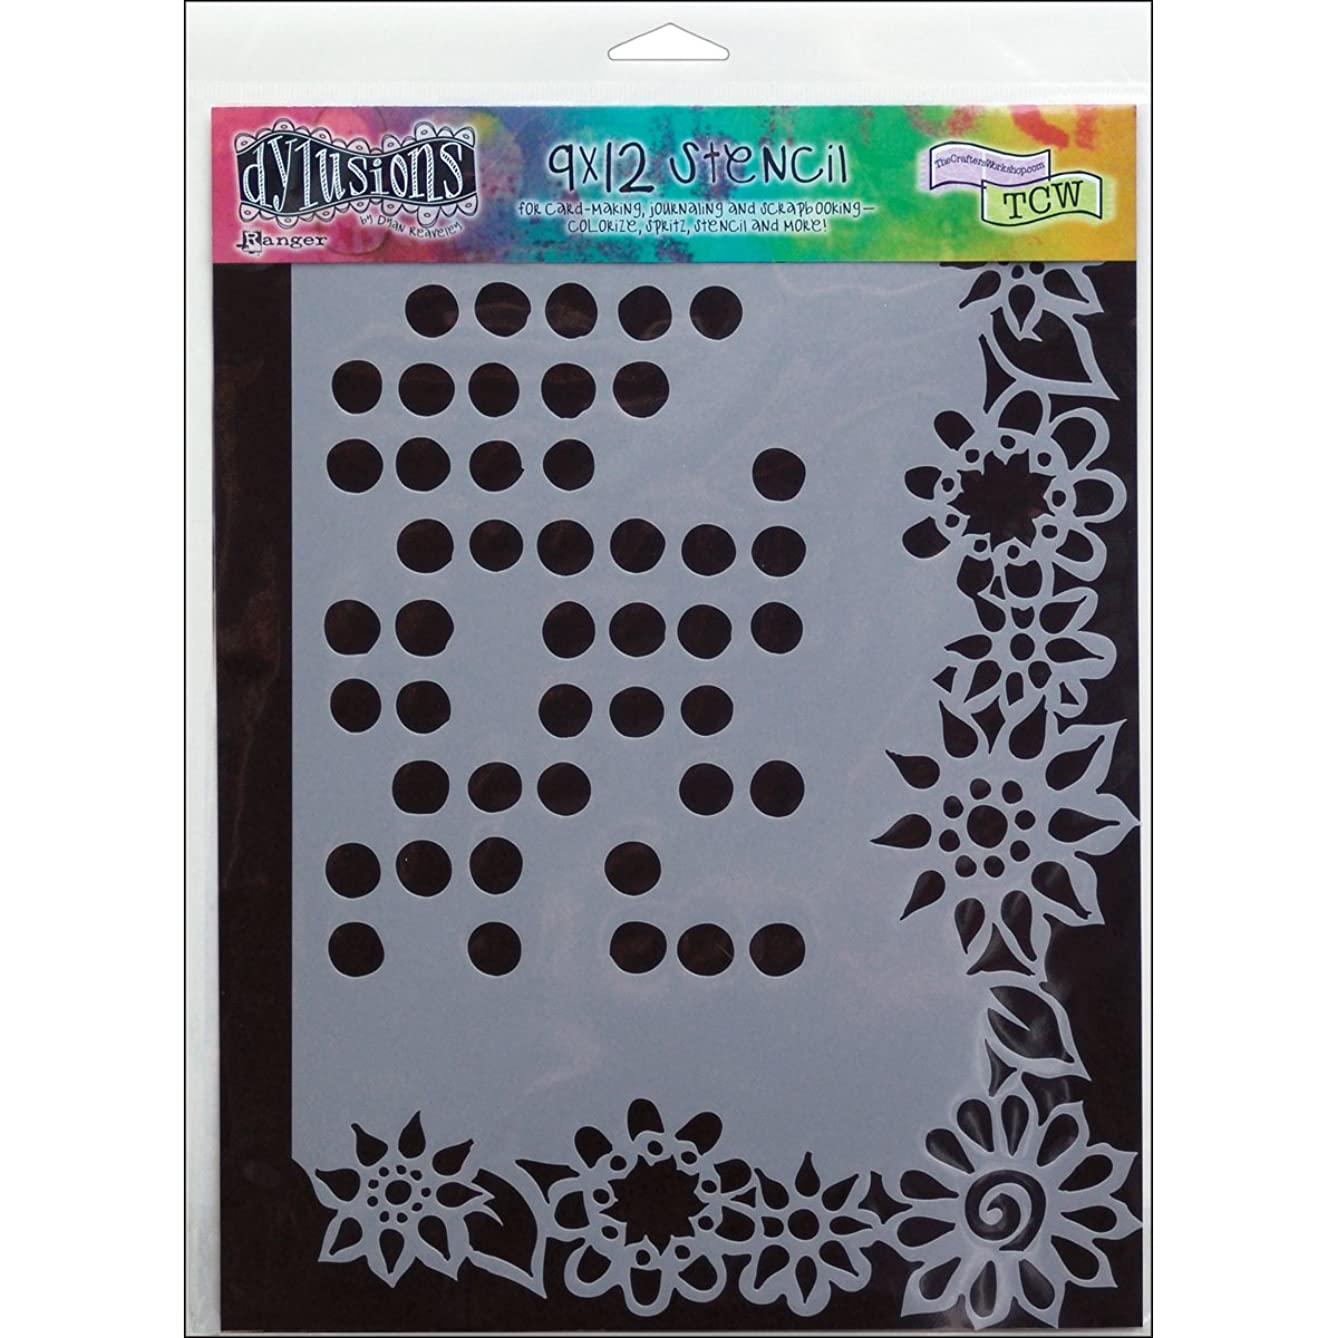 Ranger DYSL-34018 Dyan Reaveley's Dylusions Stencils, 9 by 12-Inch, Dotted Flowers